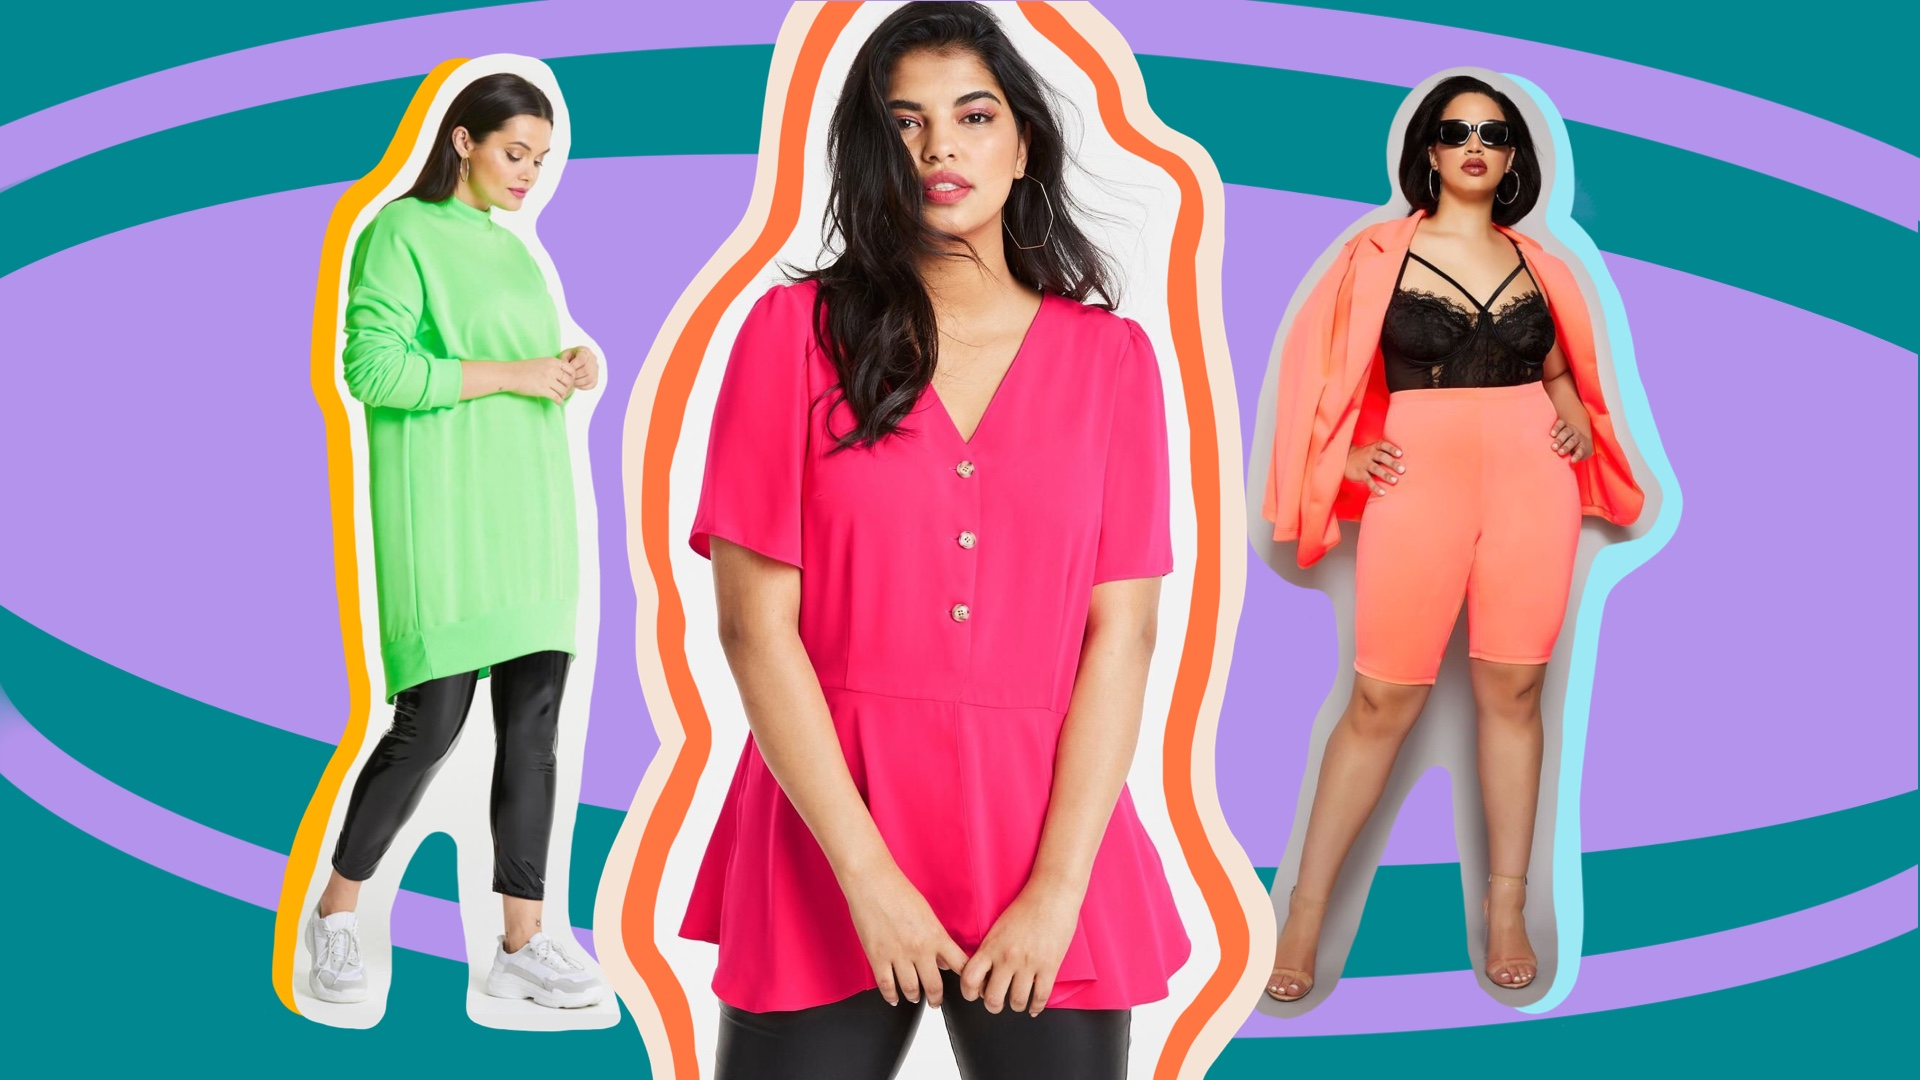 UNRULY | Plus-Size Neon Clothes Are Perfect for Everything from Parties to Daily Wear